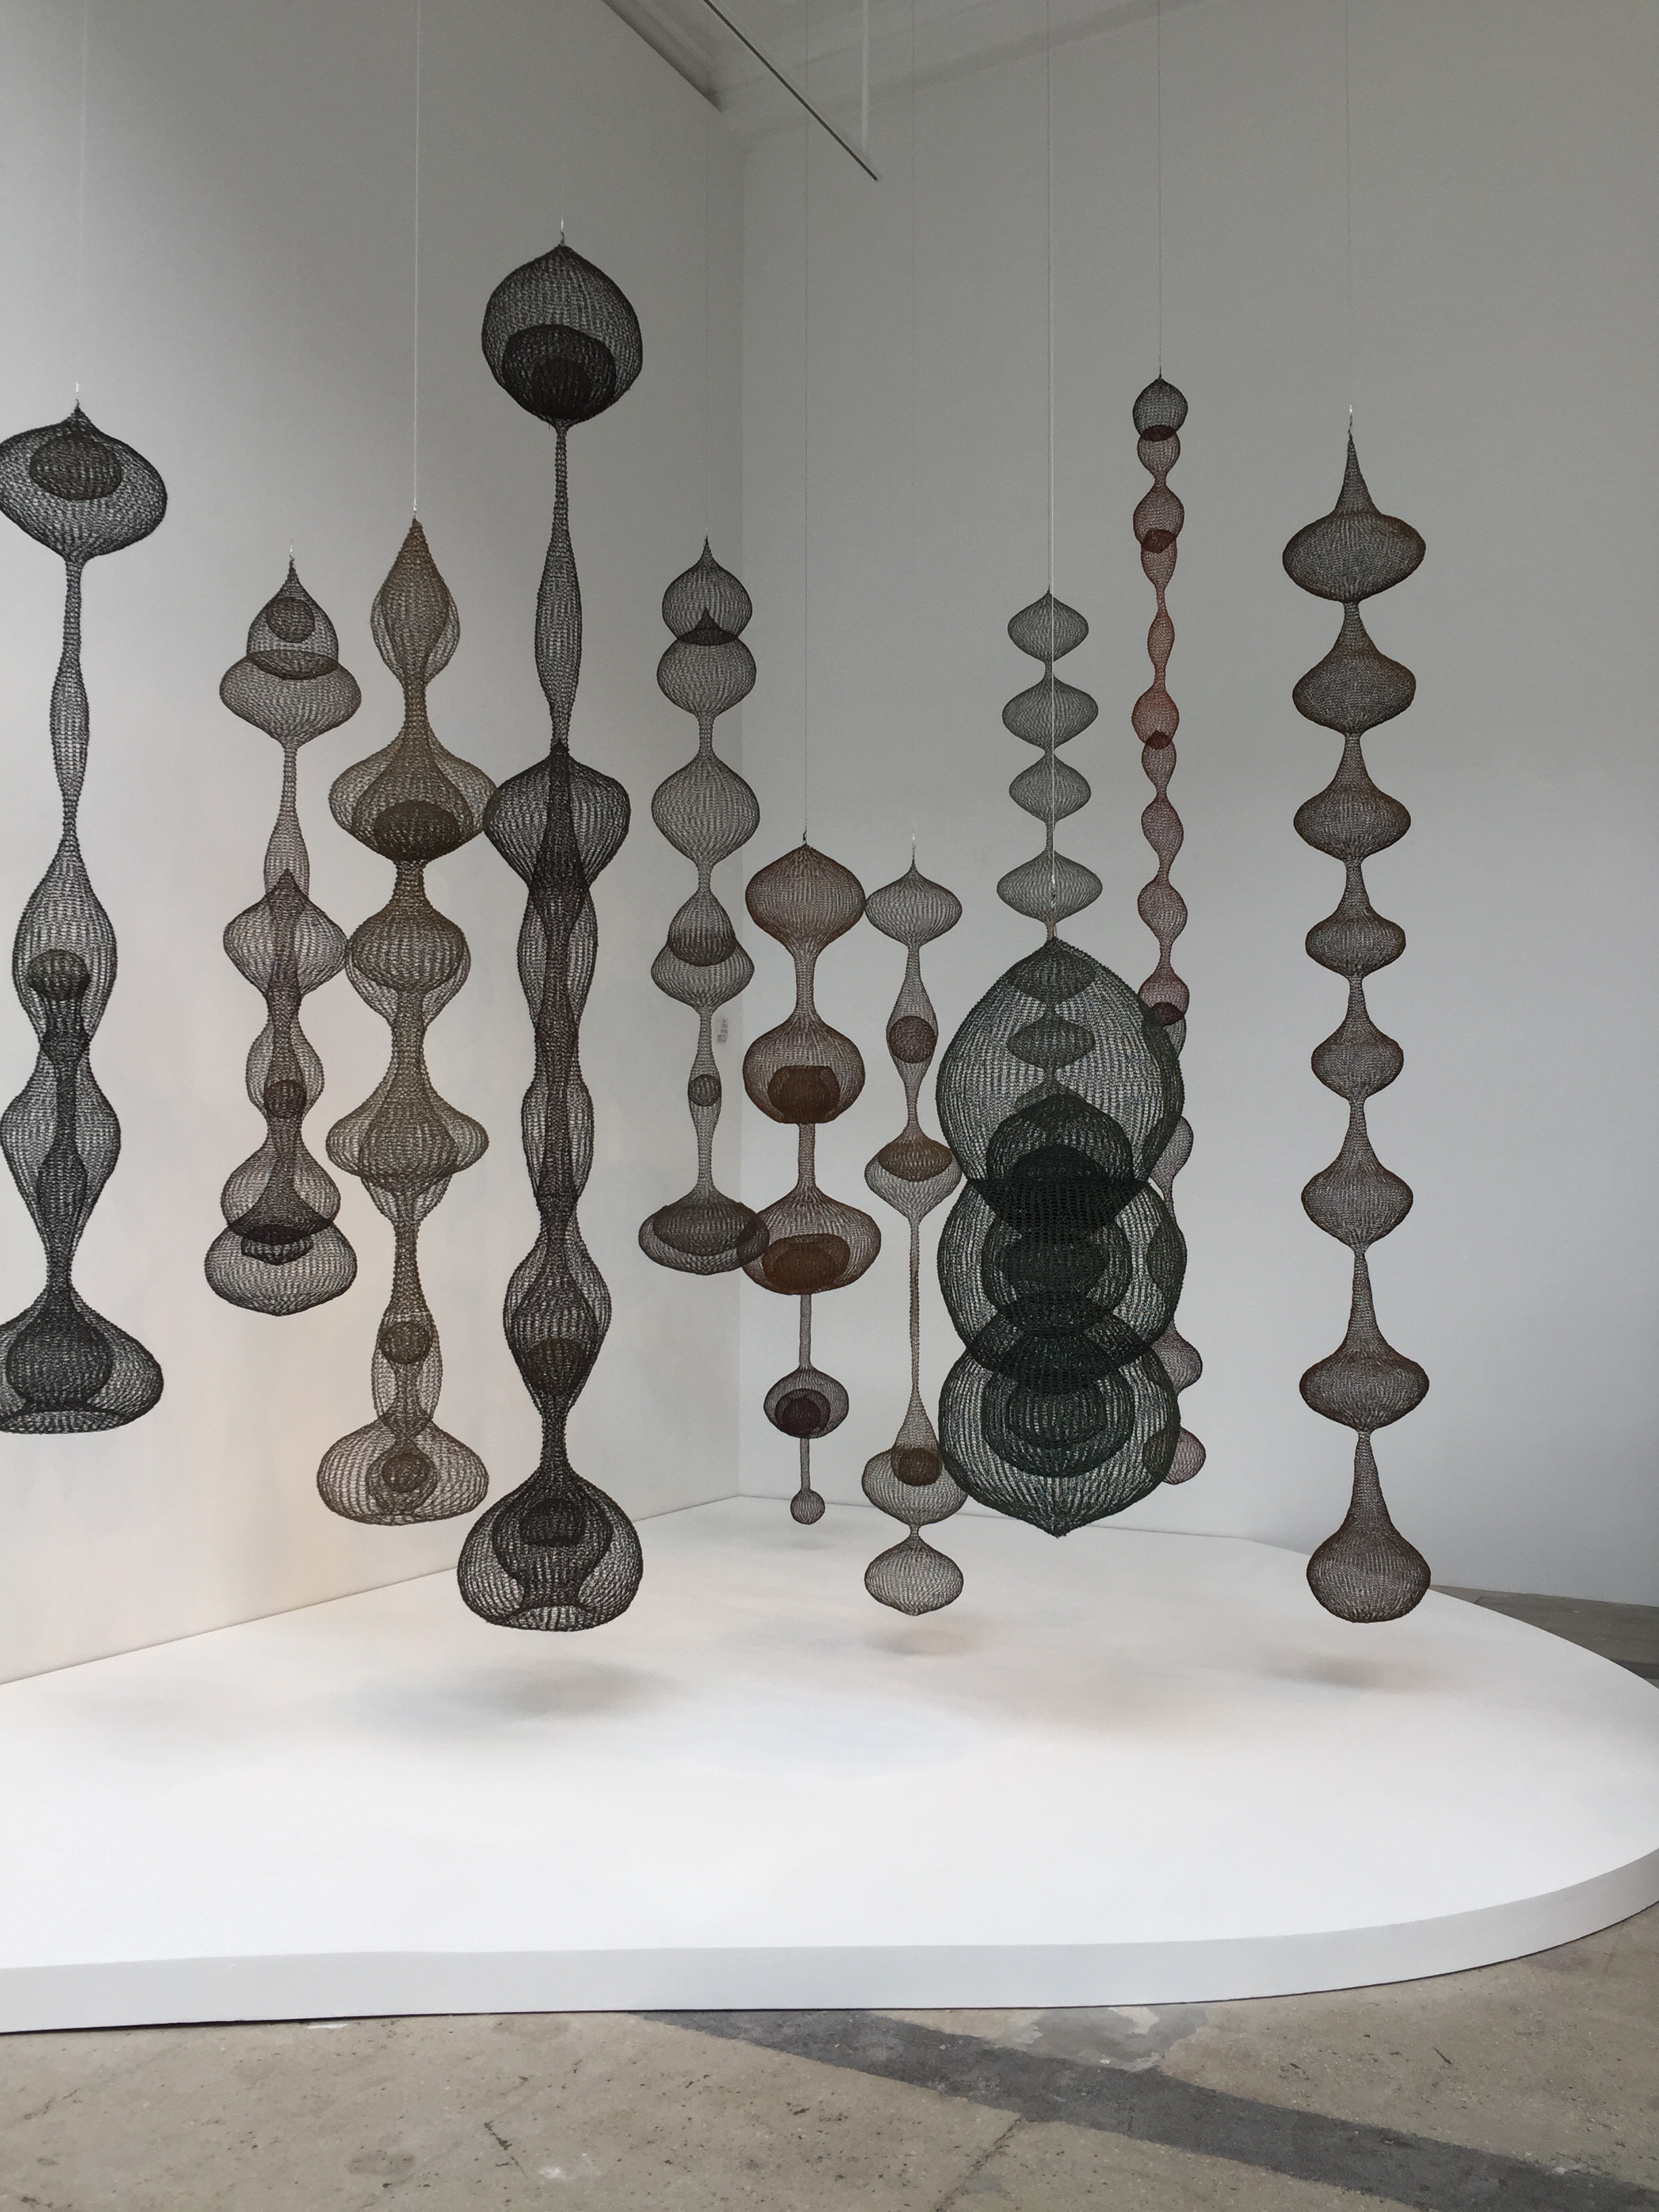 Louise Bourgeois at Hauser, Wirth & Schimmel